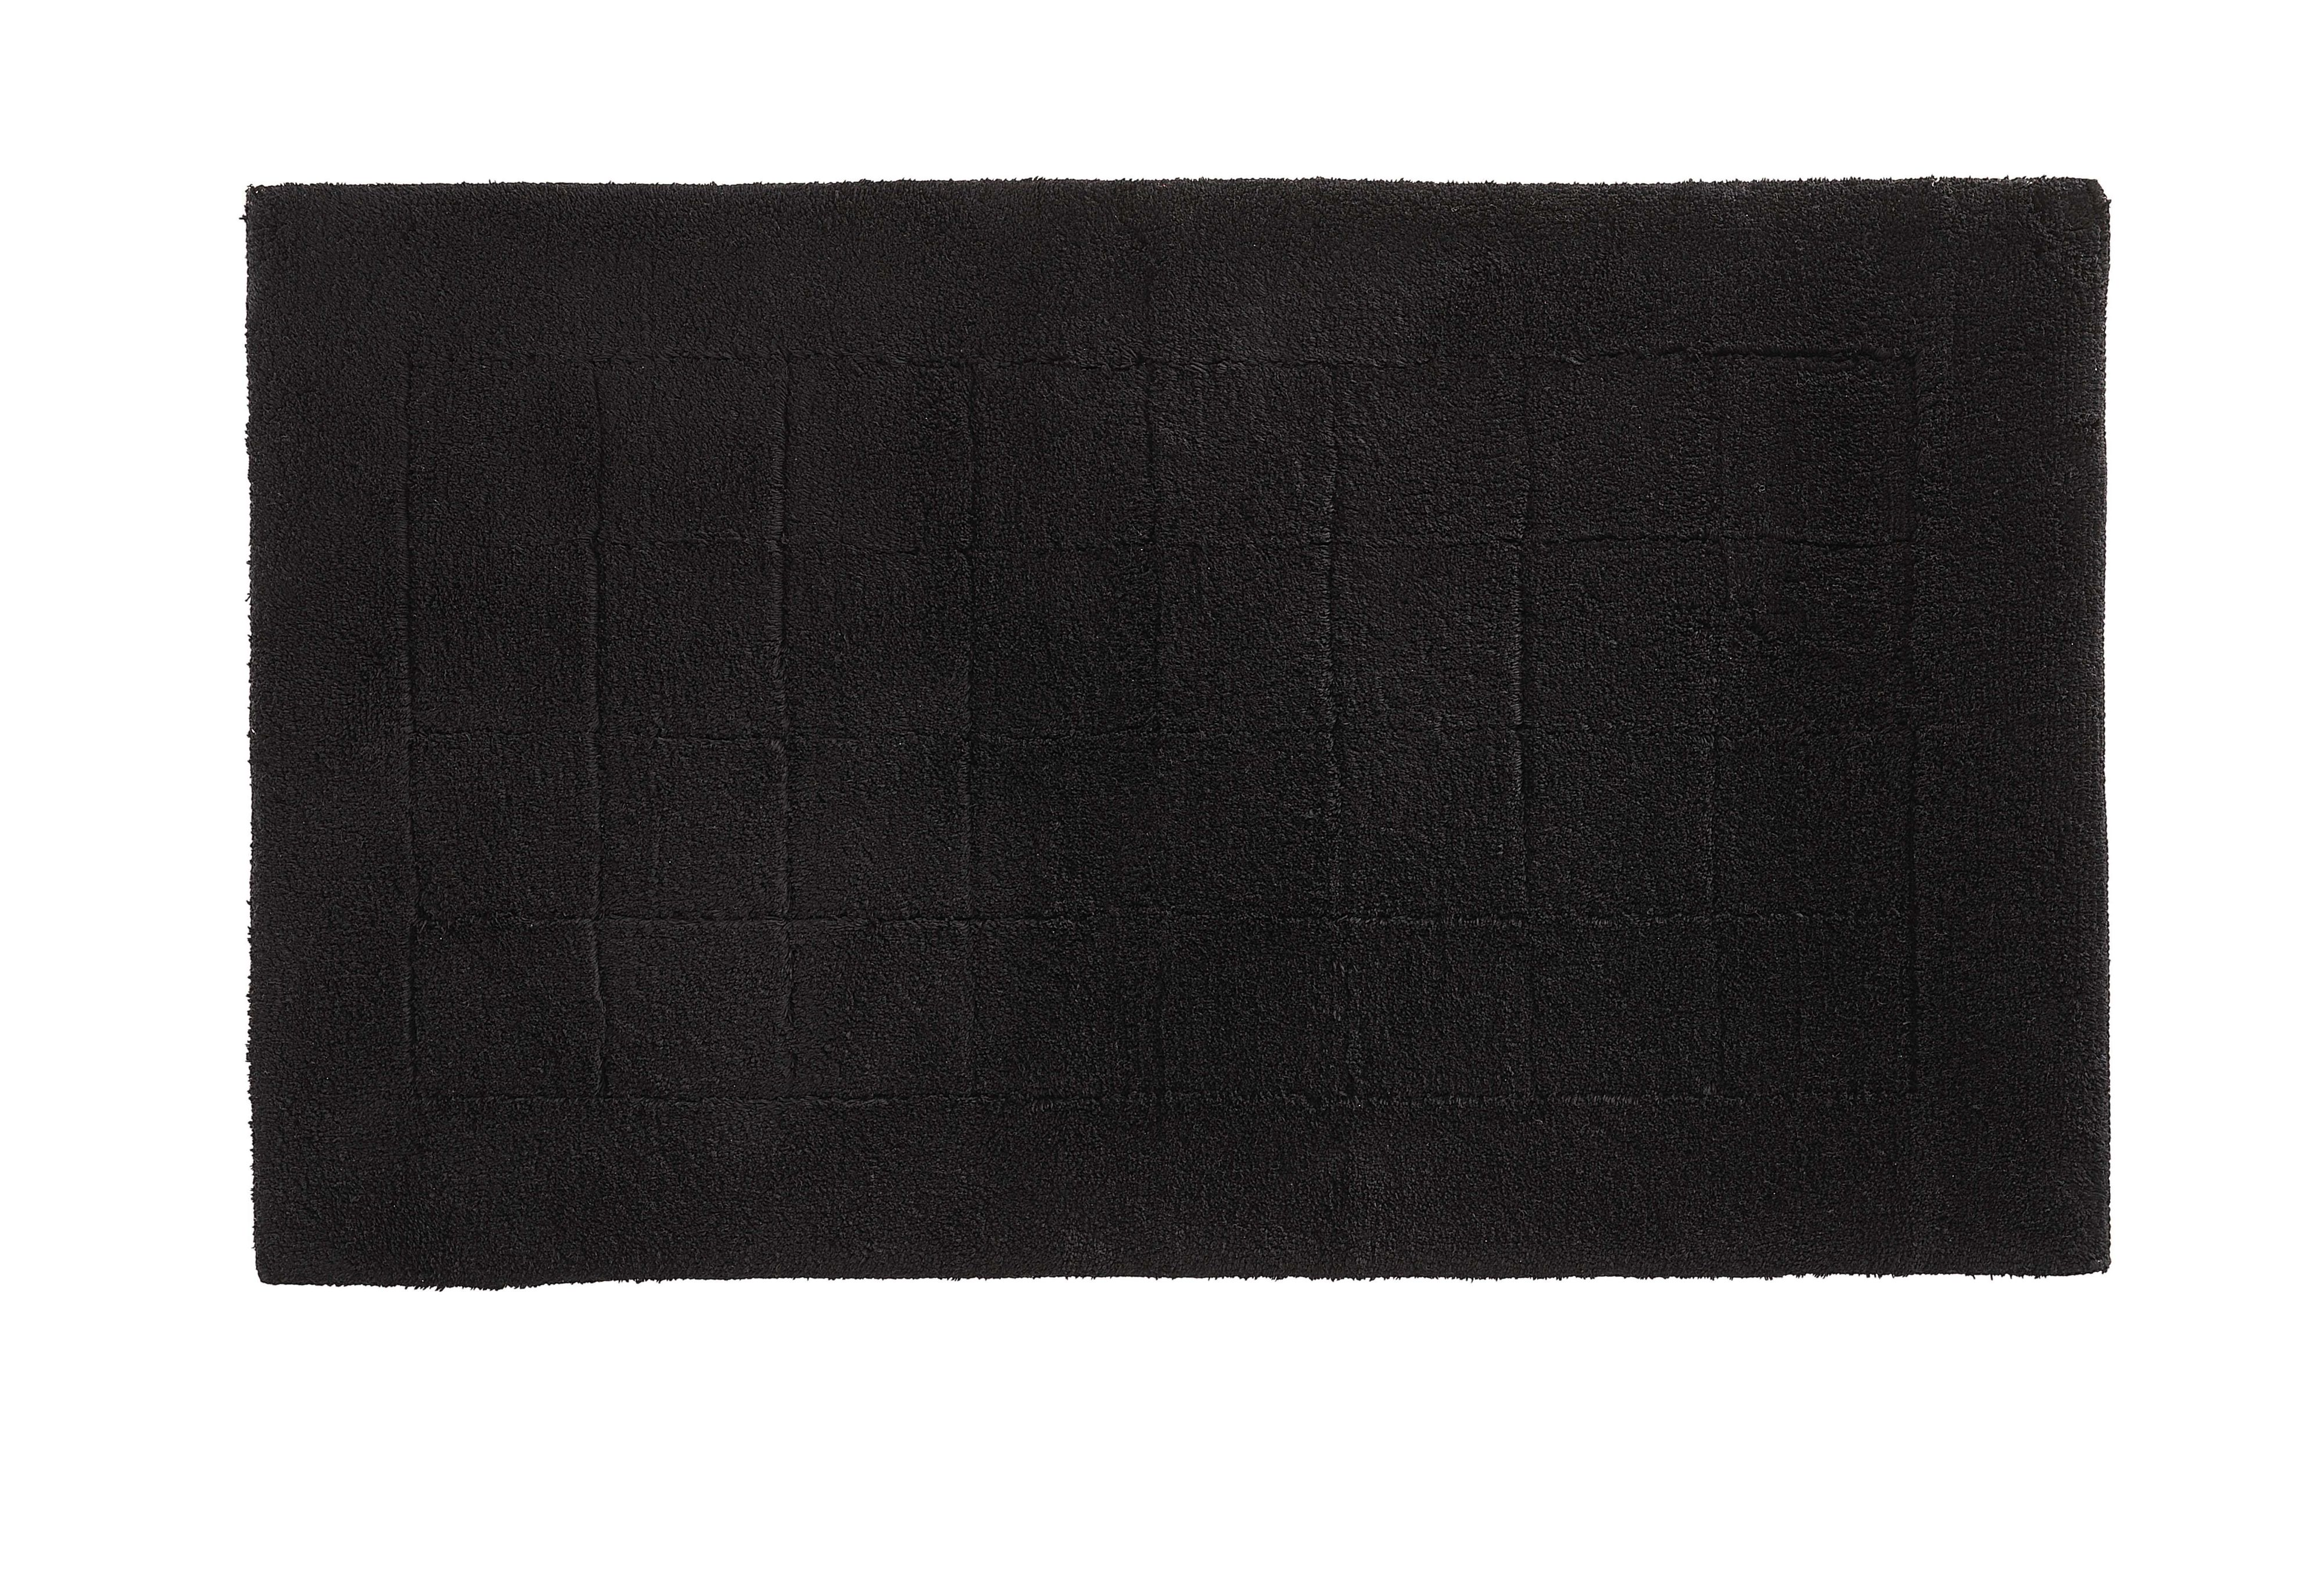 Exclusive bath mat range in black